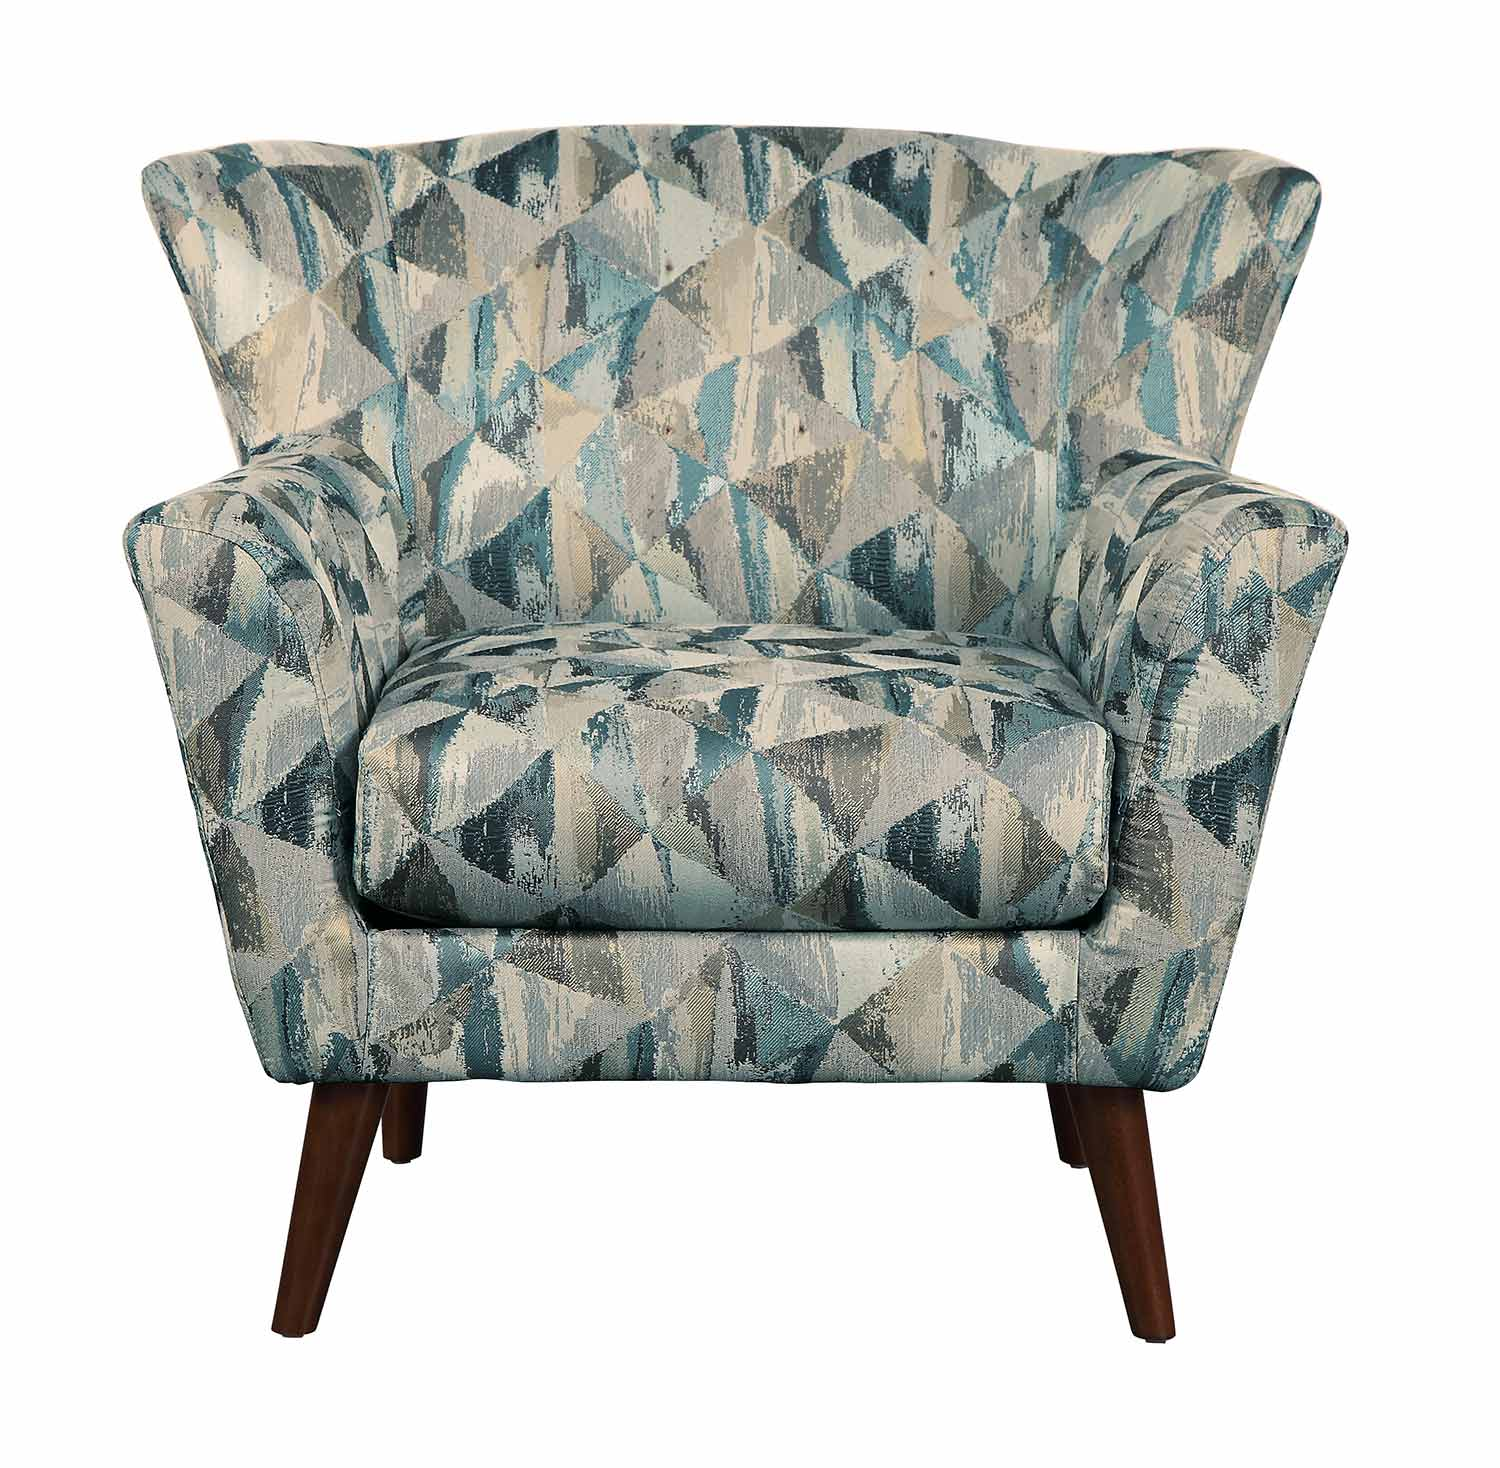 Homelegance Maja Accent Chair - Gray/teal